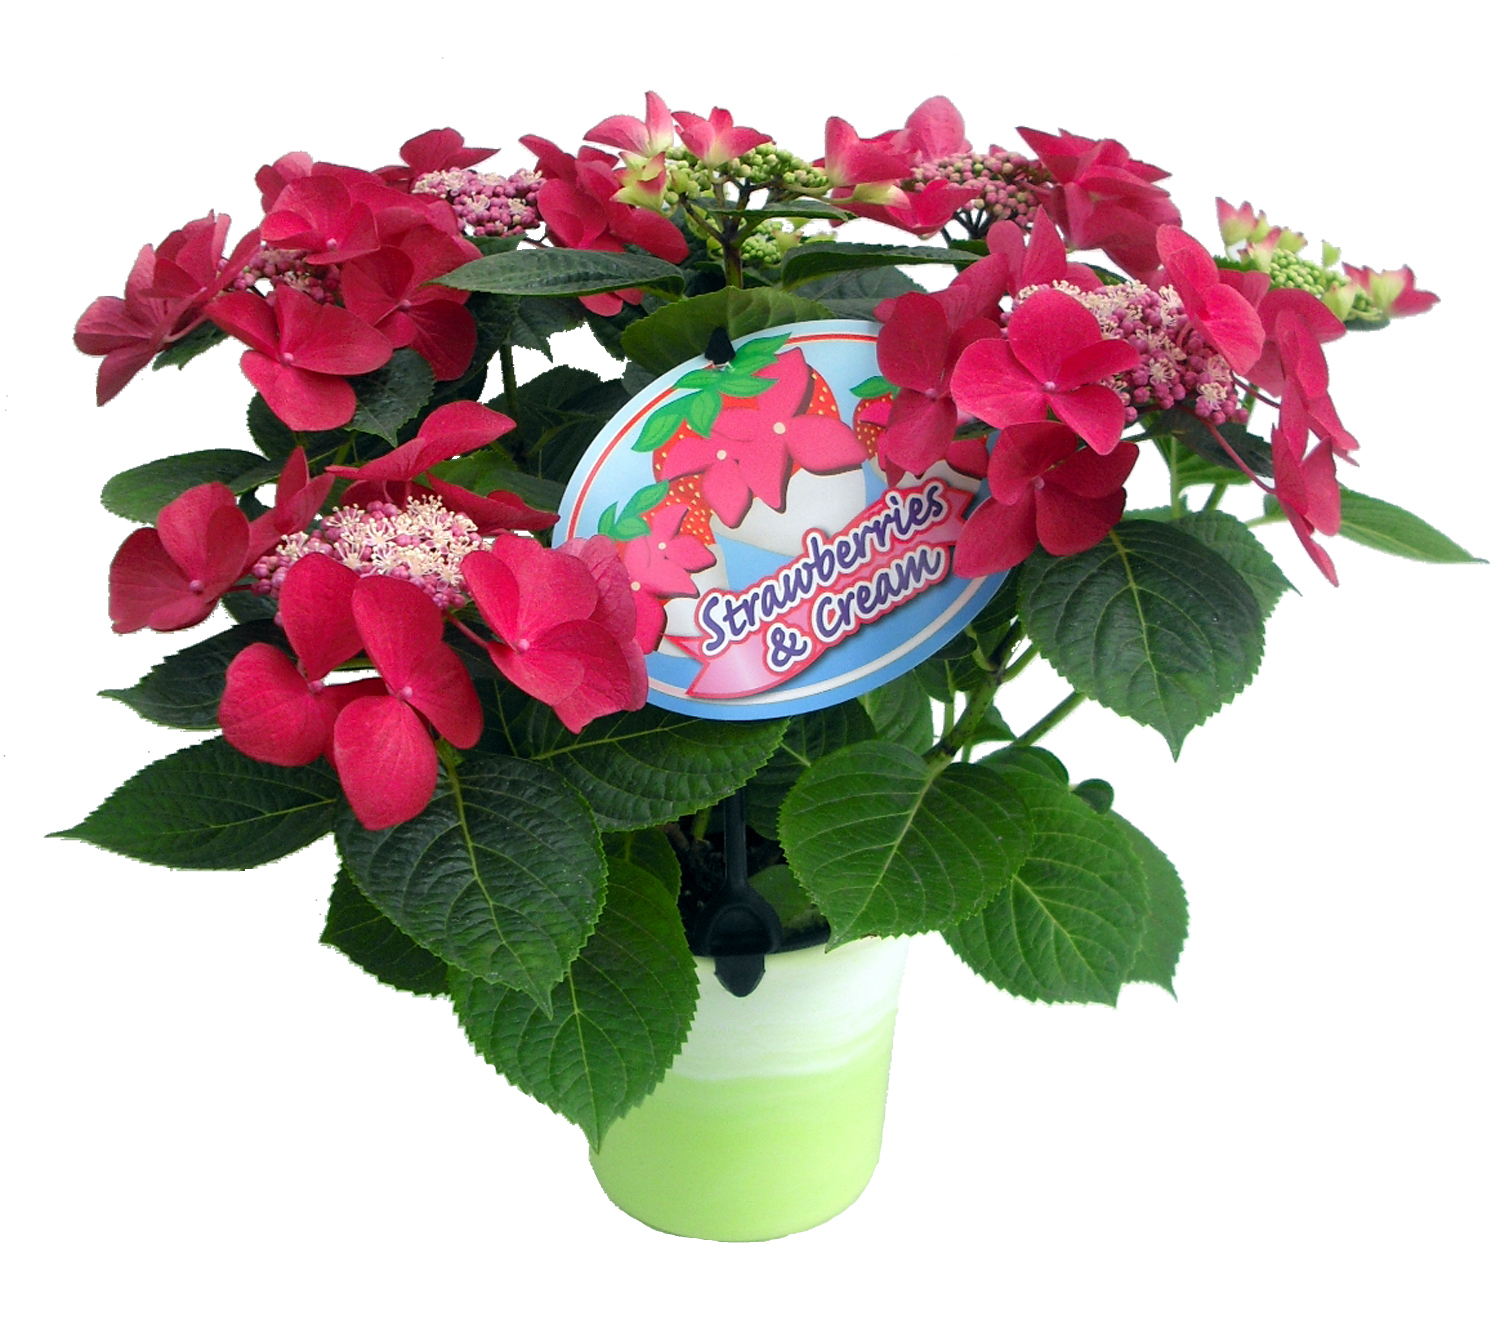 Strawberries And Cream Hydrangea Hydrangea Strawberries And